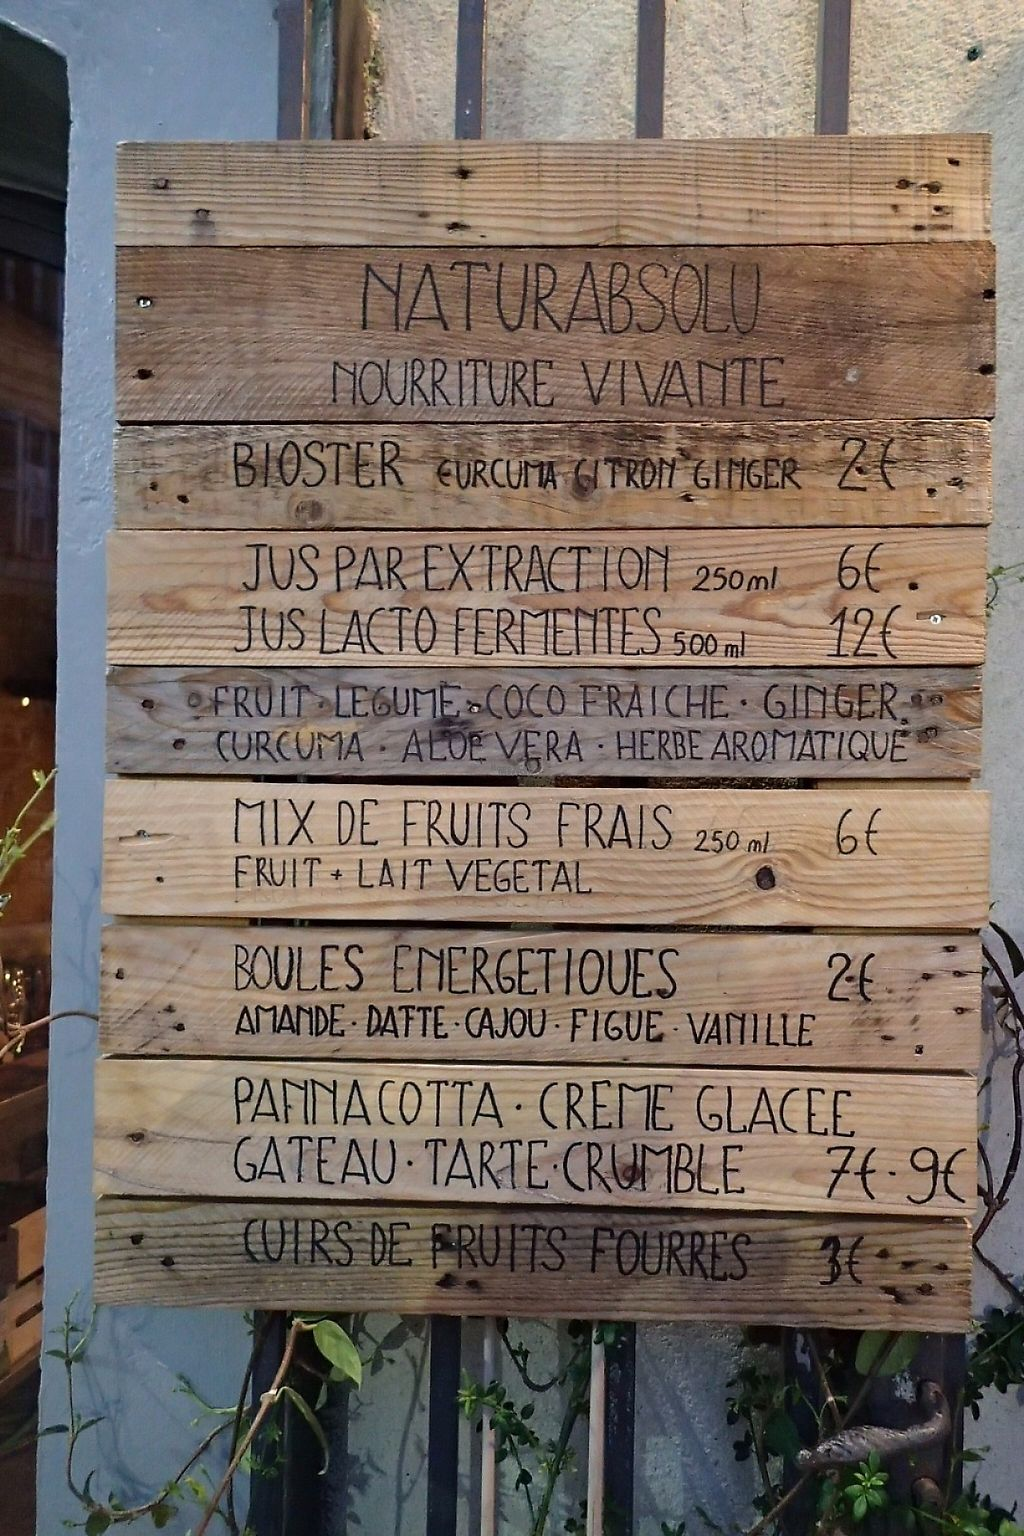 """Photo of Naturabsolu  by <a href=""""/members/profile/Tyrone"""">Tyrone</a> <br/>Wooden sign-boards outside the restaurant <br/> April 10, 2017  - <a href='/contact/abuse/image/74572/246703'>Report</a>"""